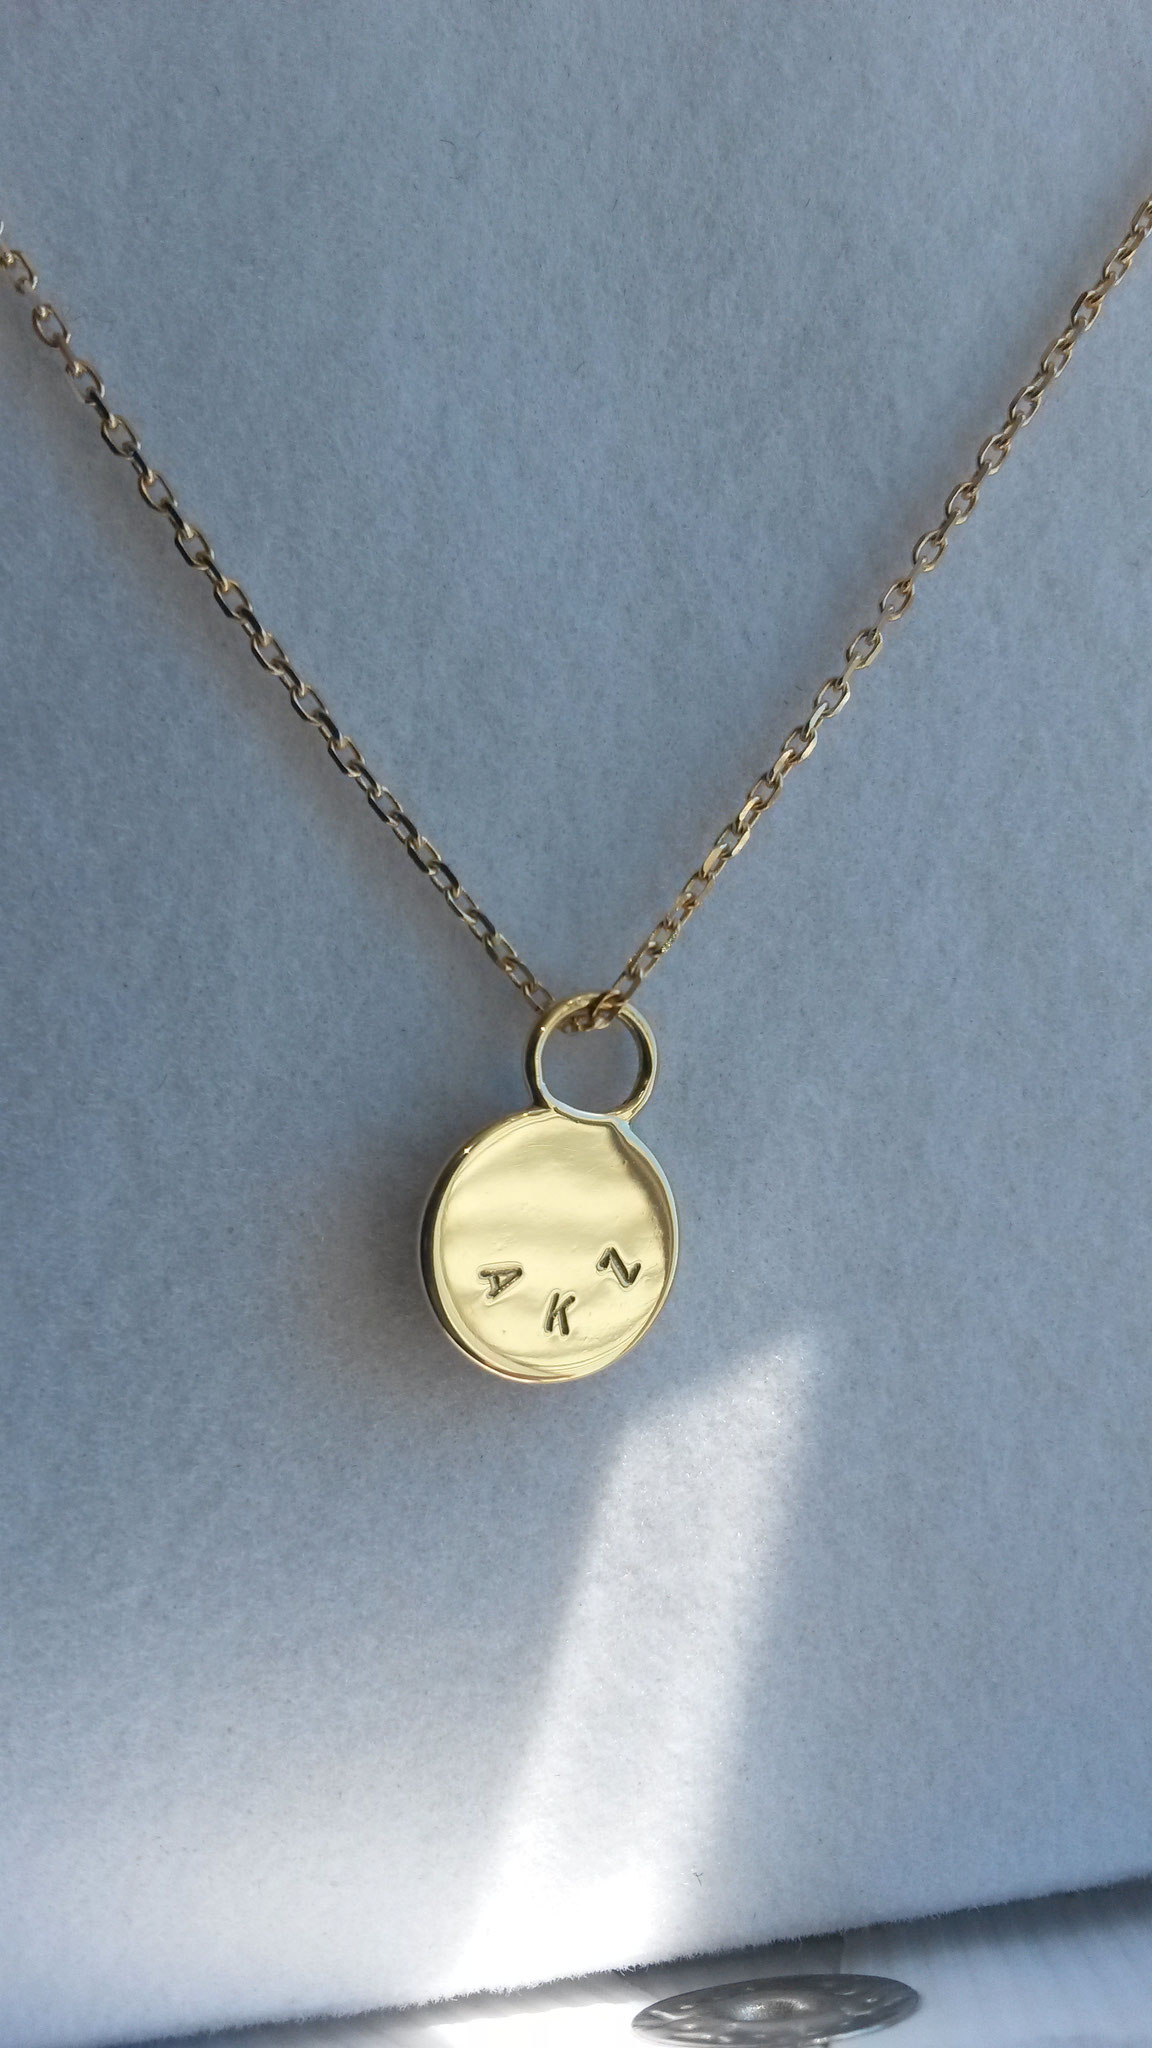 Personalized pendant in 14k gold